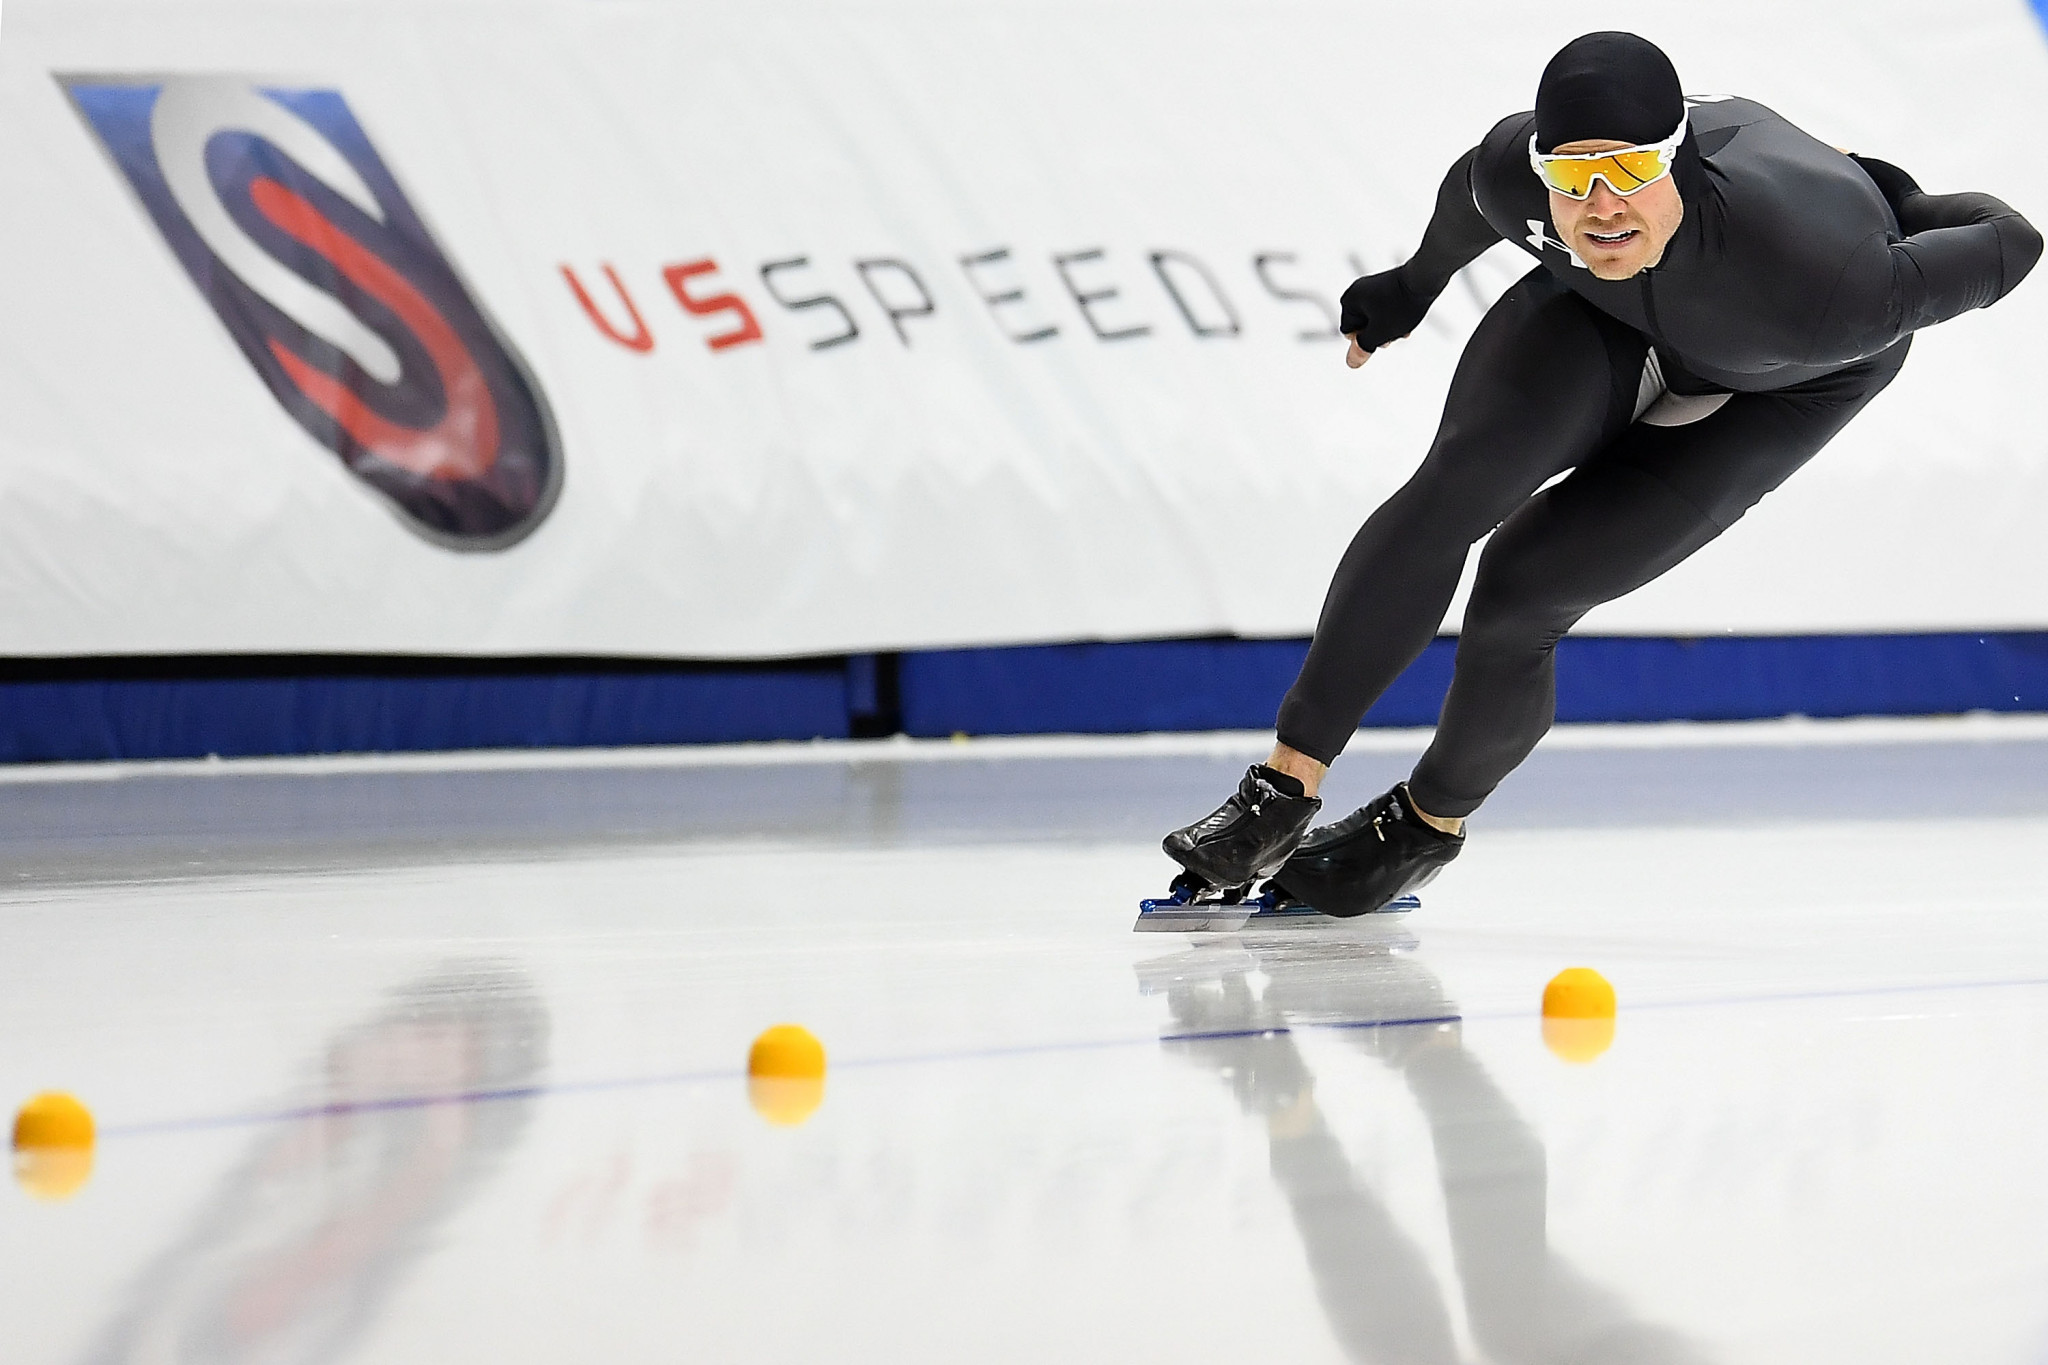 Five added to United States speed skating squad for Pyeongchang 2018